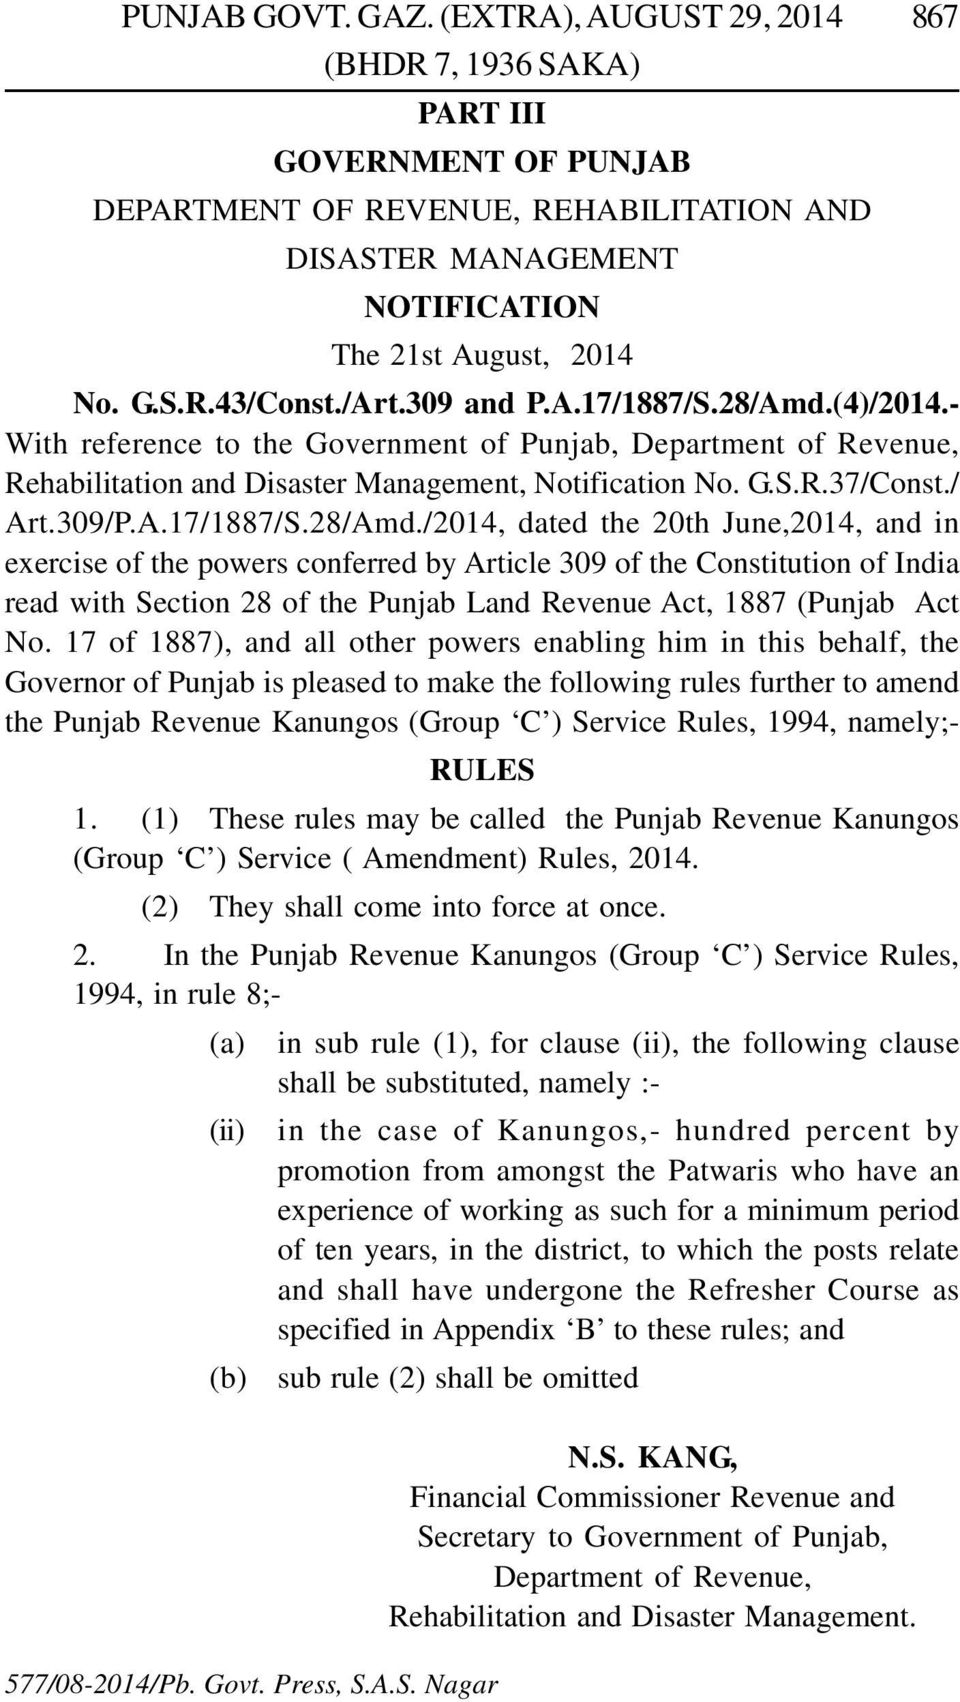 /2014, dated the 20th June,2014, and in exercise of the powers conferred by Article 309 of the Constitution of India read with Section 28 of the Punjab Land Revenue Act, 1887 (Punjab Act No.